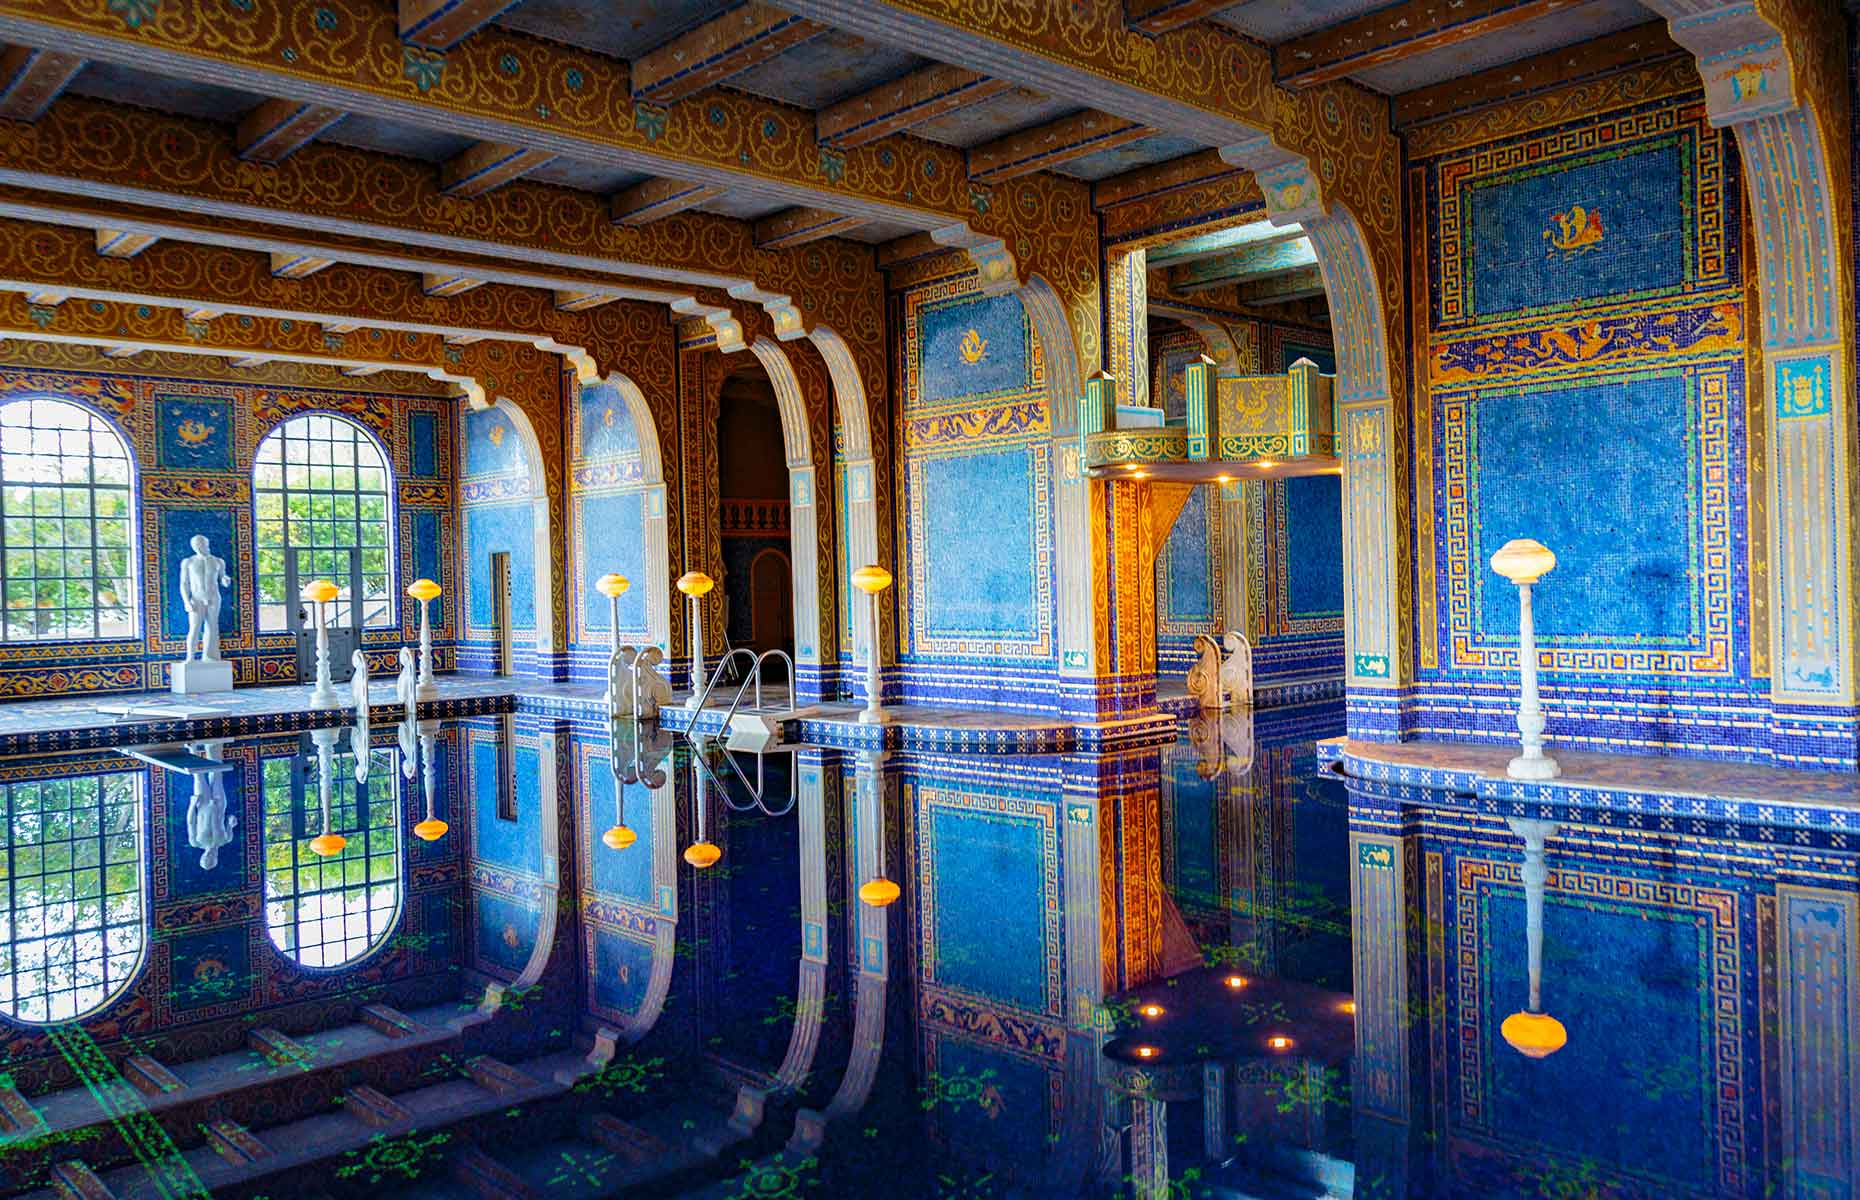 The opulent swimming pool at Hearst Castle